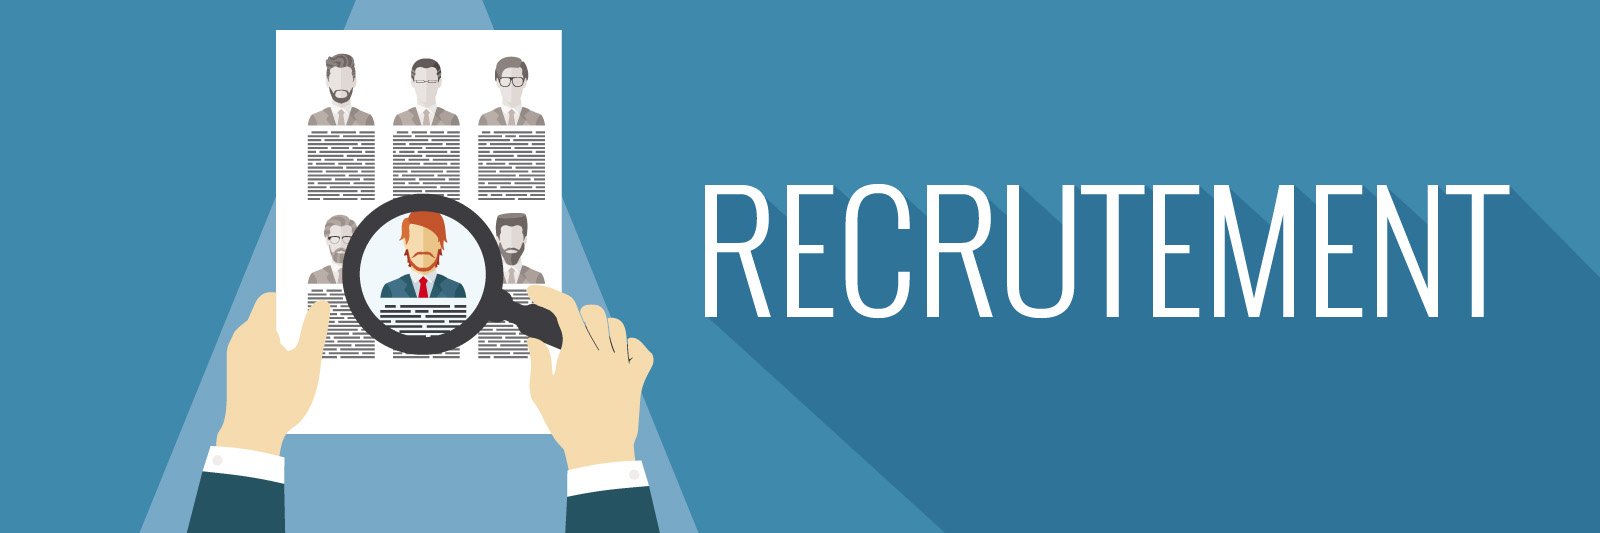 webdrop recrute e-commerce dropshipping